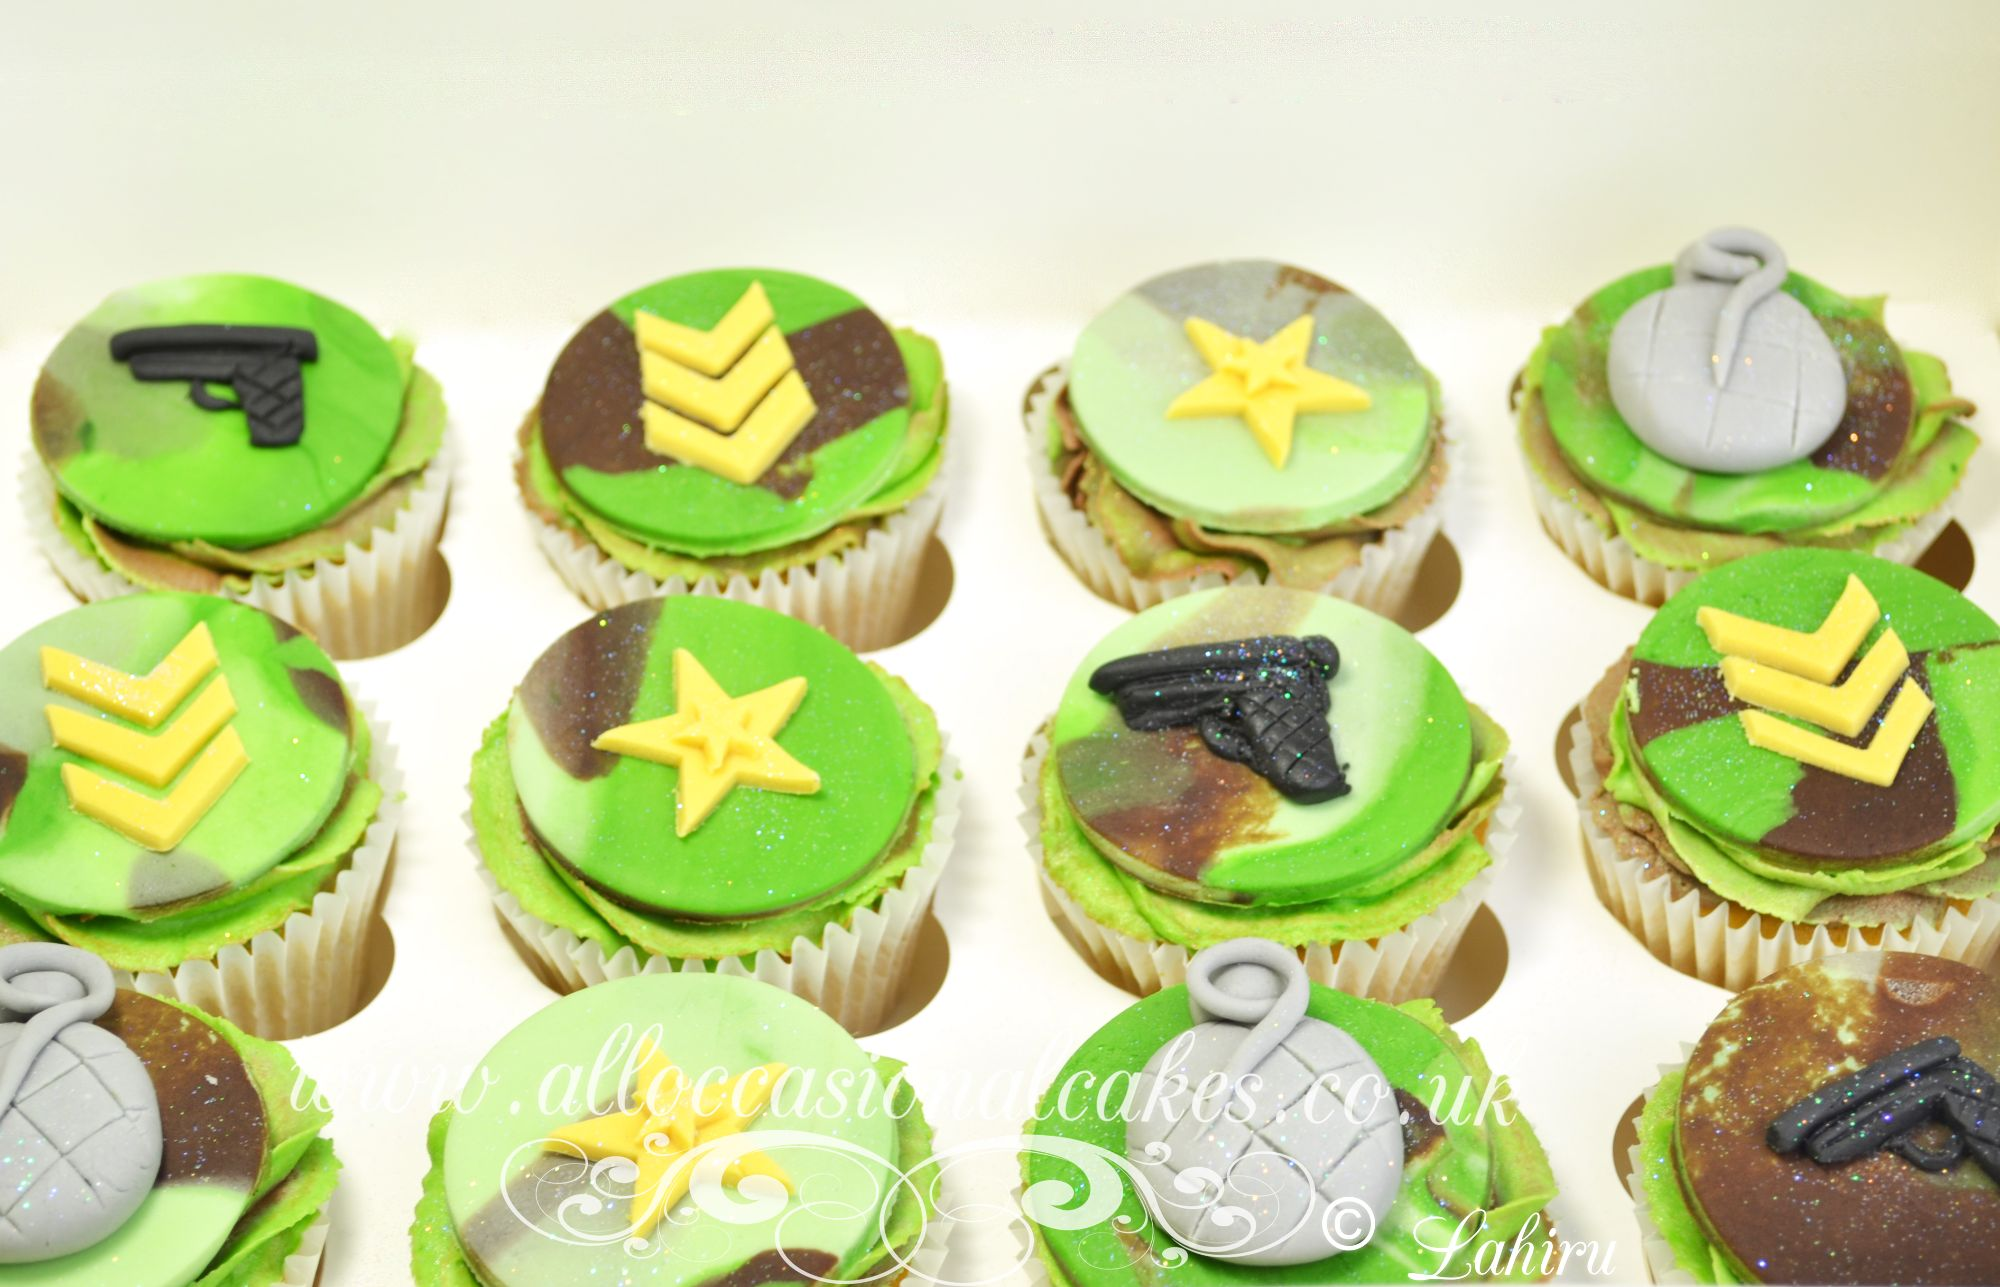 army themed sugar toppers